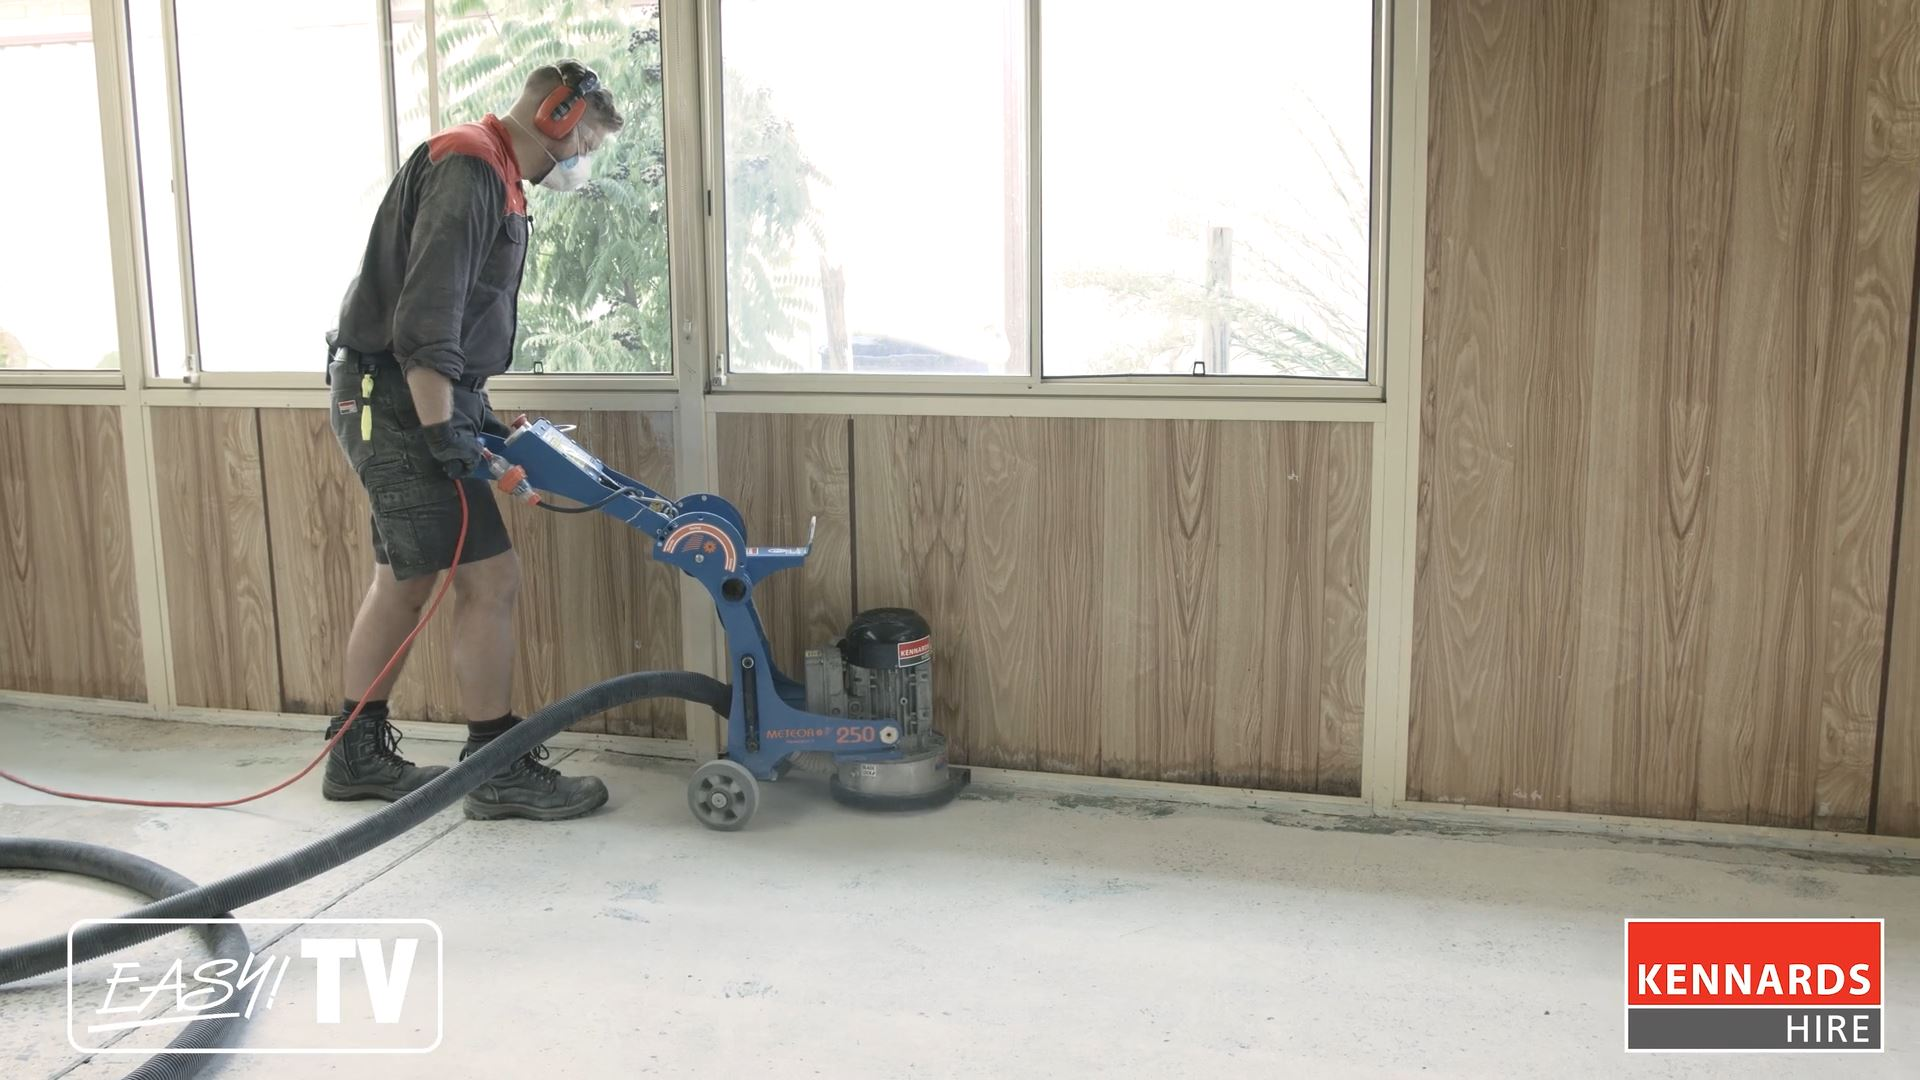 Use the grinder edger along the walls